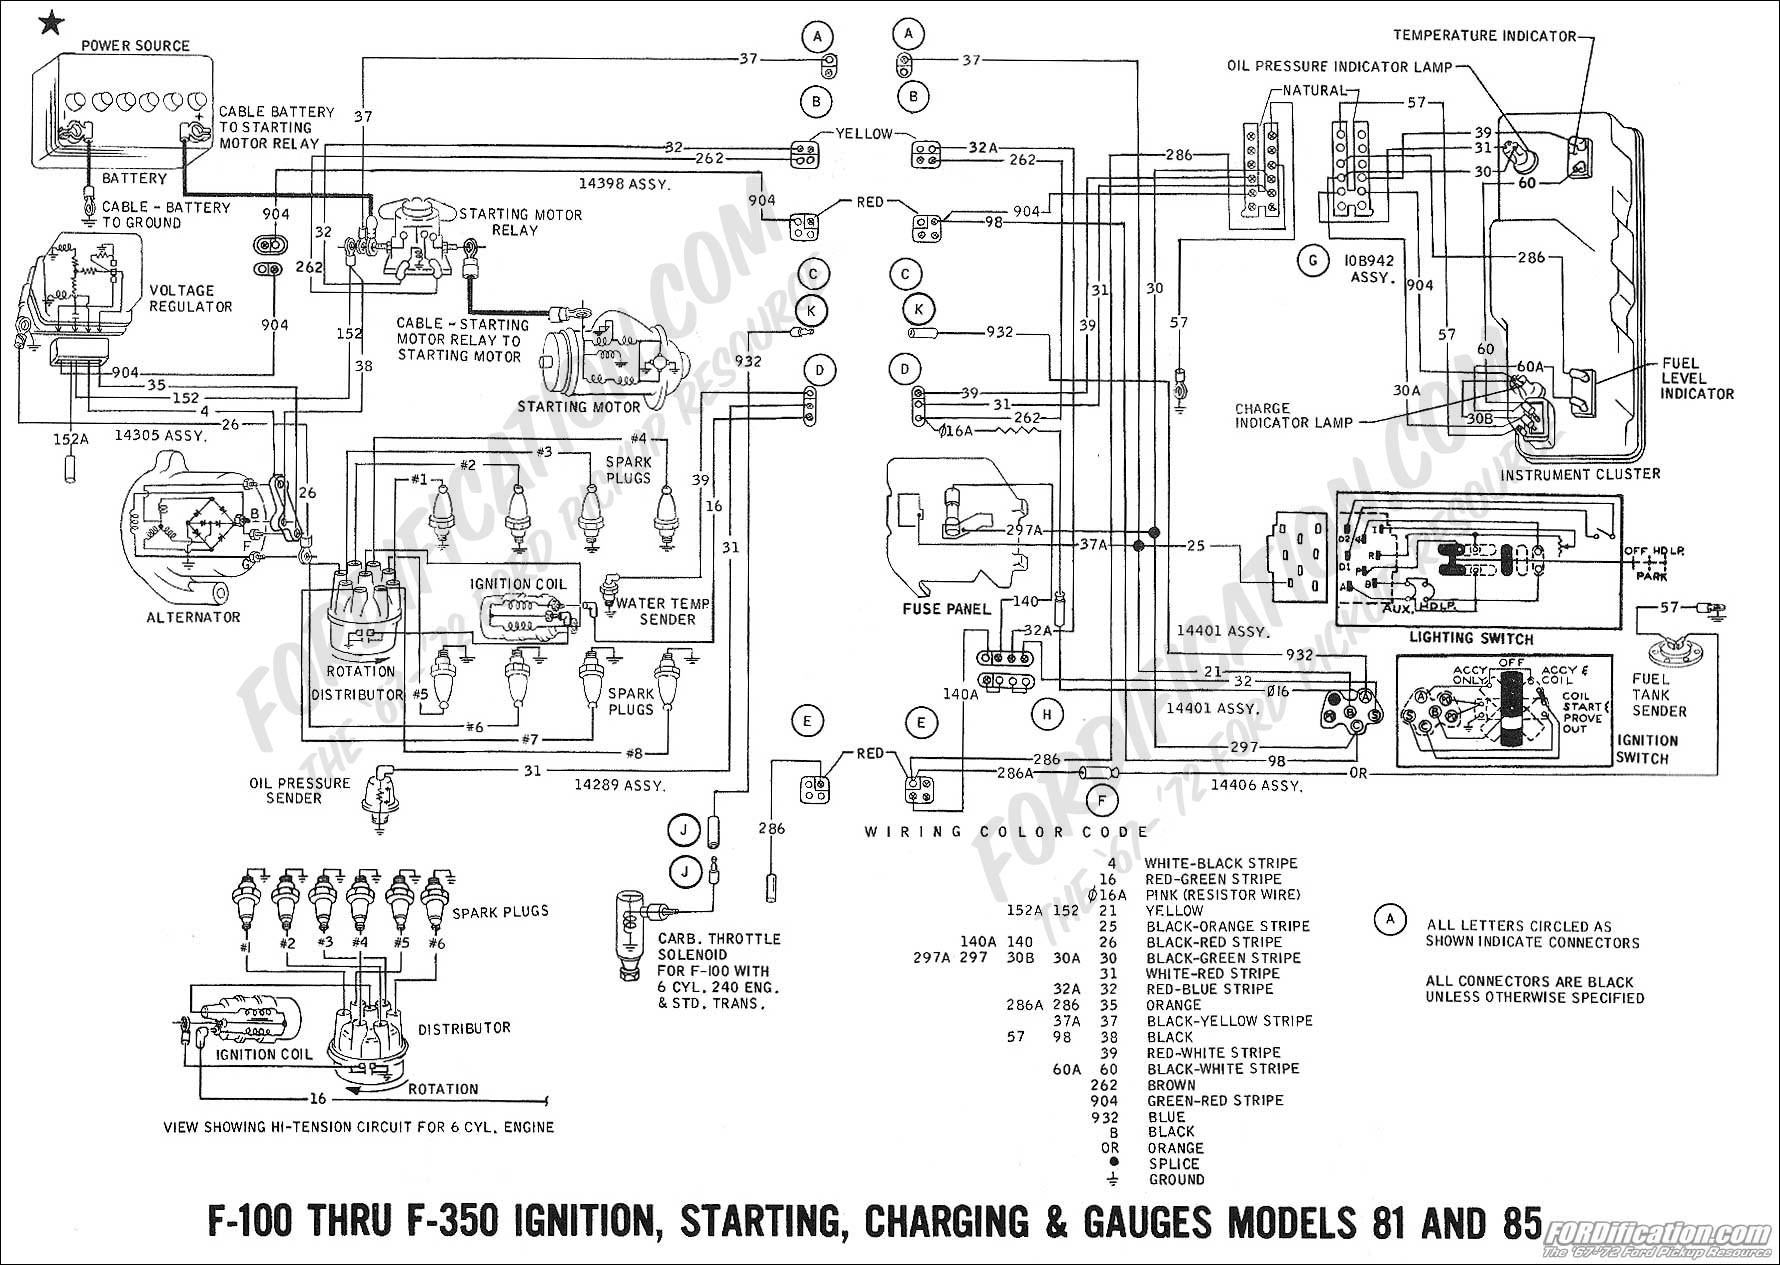 1978 F150 Charging Wiring Diagram Libraries Porsche 914 Engine Dolly Diagrams Scematic1977 Ford F 150 Library